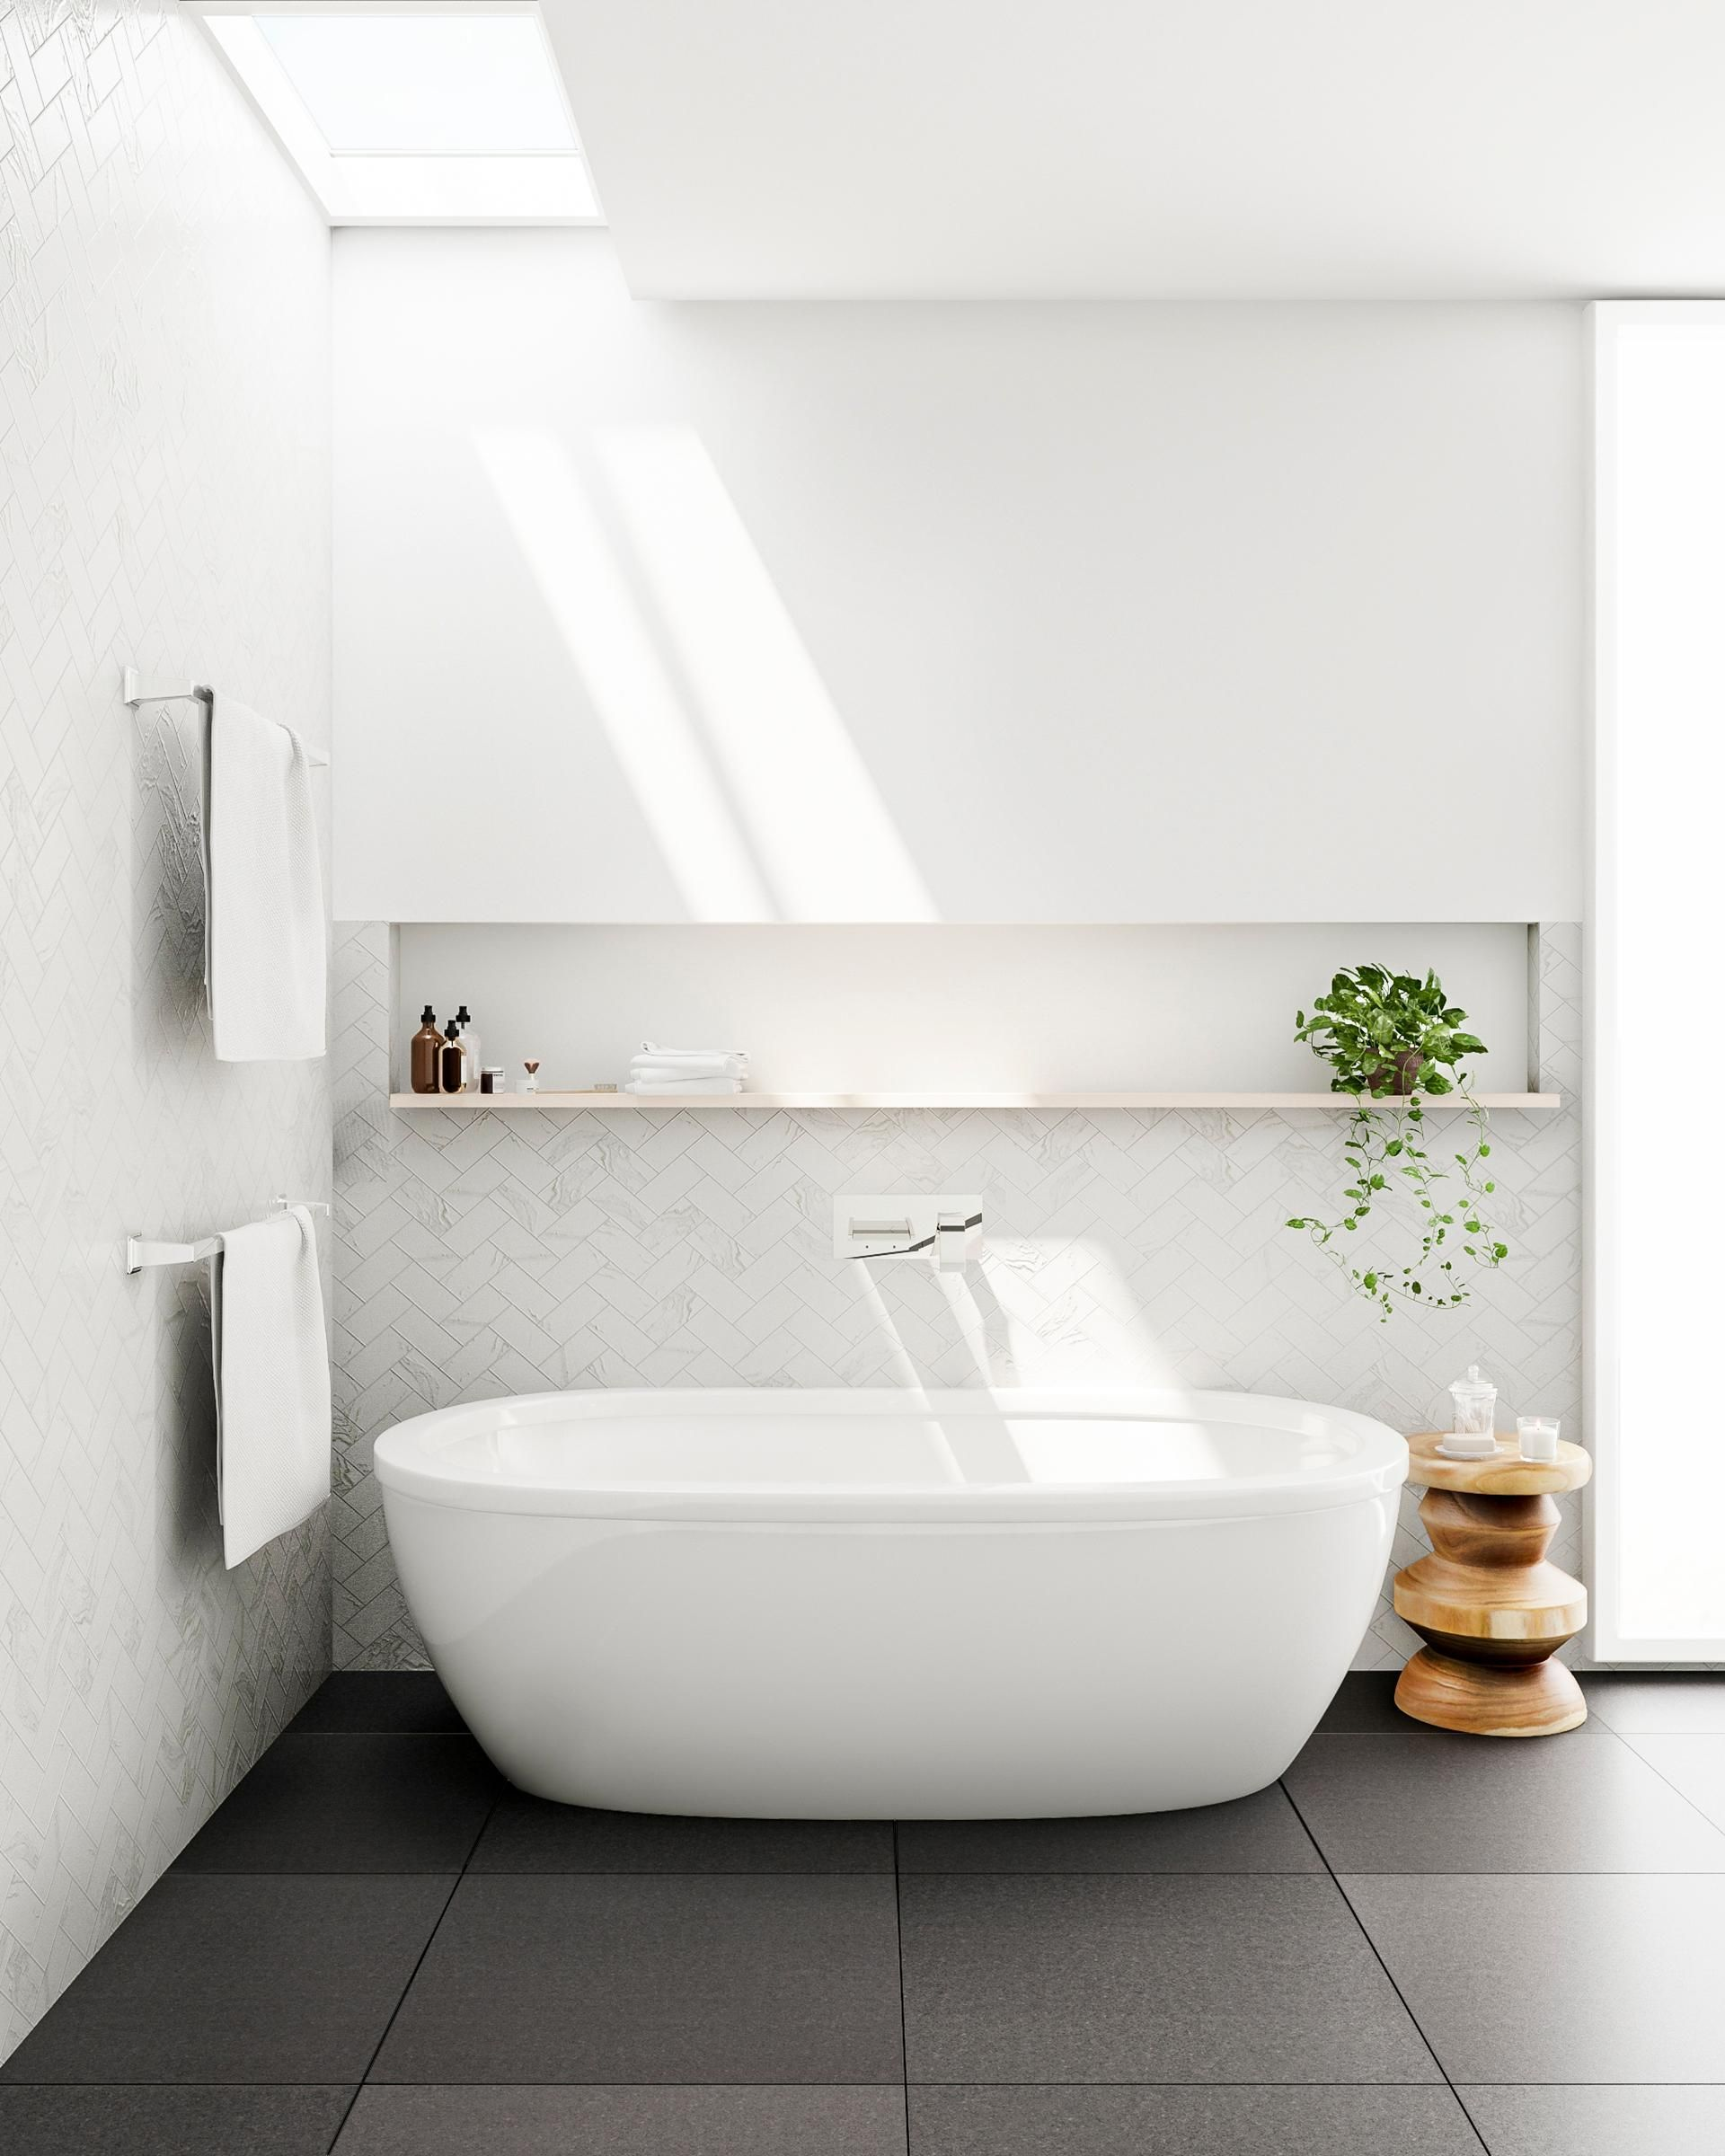 Small bathroom designs ideas in also best beautiful and to inspire you rh pinterest